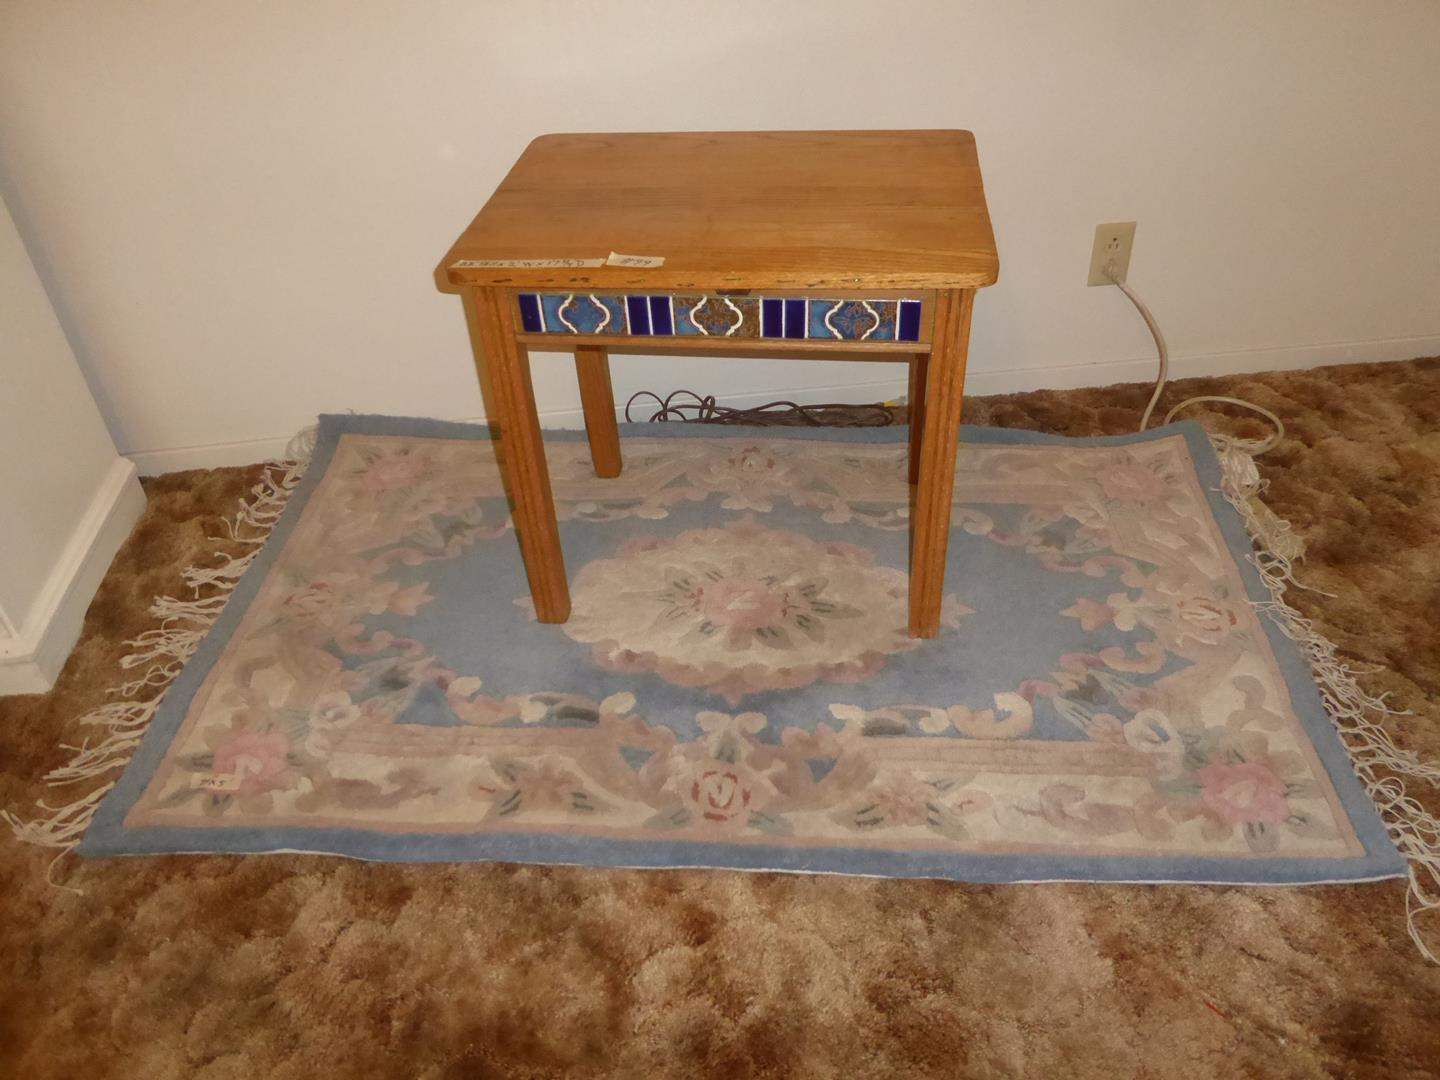 Lot # 99 - Vintage Wooden Tile Inlay End Table & 100% Wool Floral Area Rug (main image)